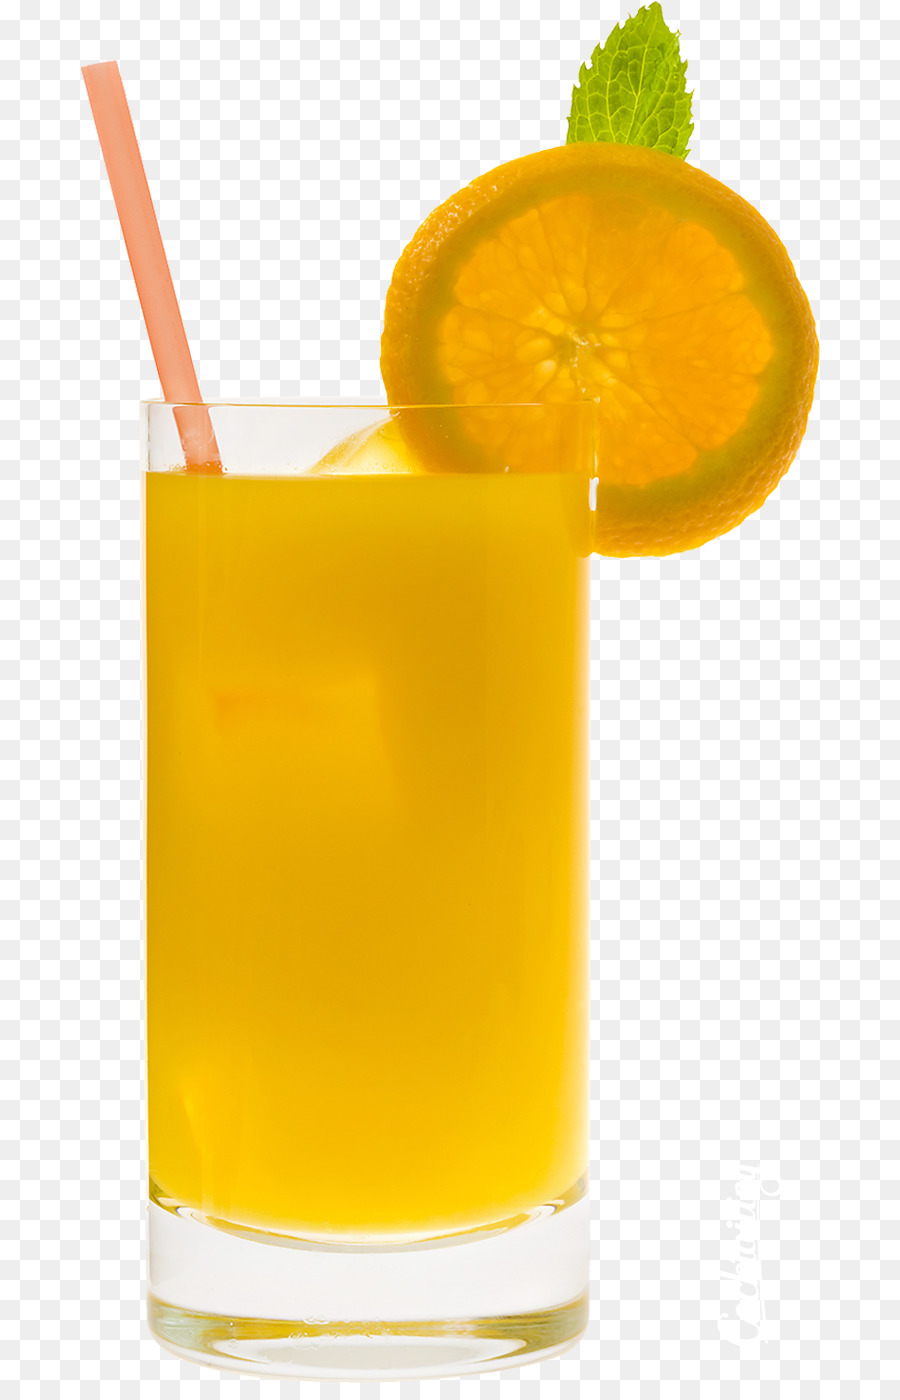 how to make cocktail with vodka and orange juice